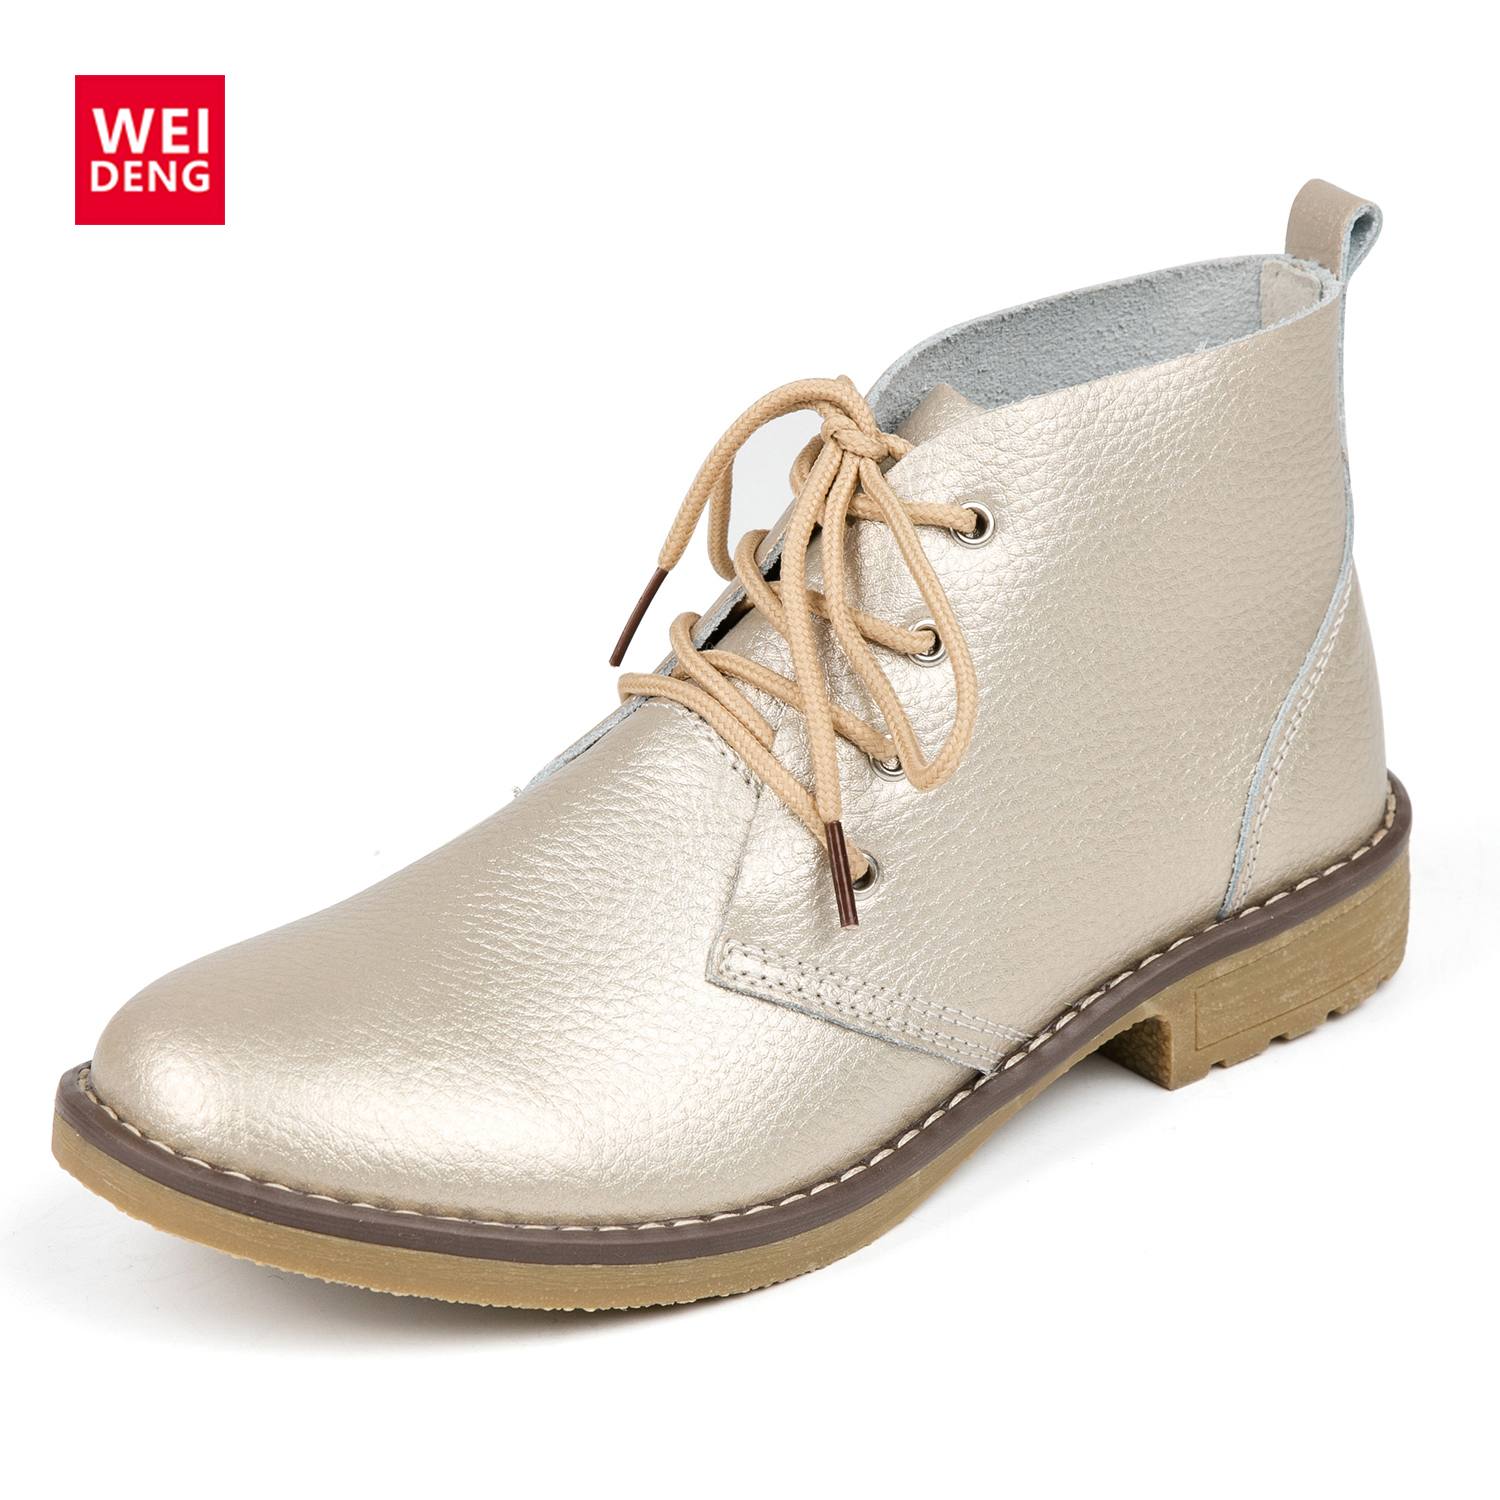 WeiDeng Leather Boots Women Classic Genuine Matin Fashion Flats Winter Lace Up High Top Casual Waterproof  Ankle Shoes Outdoor